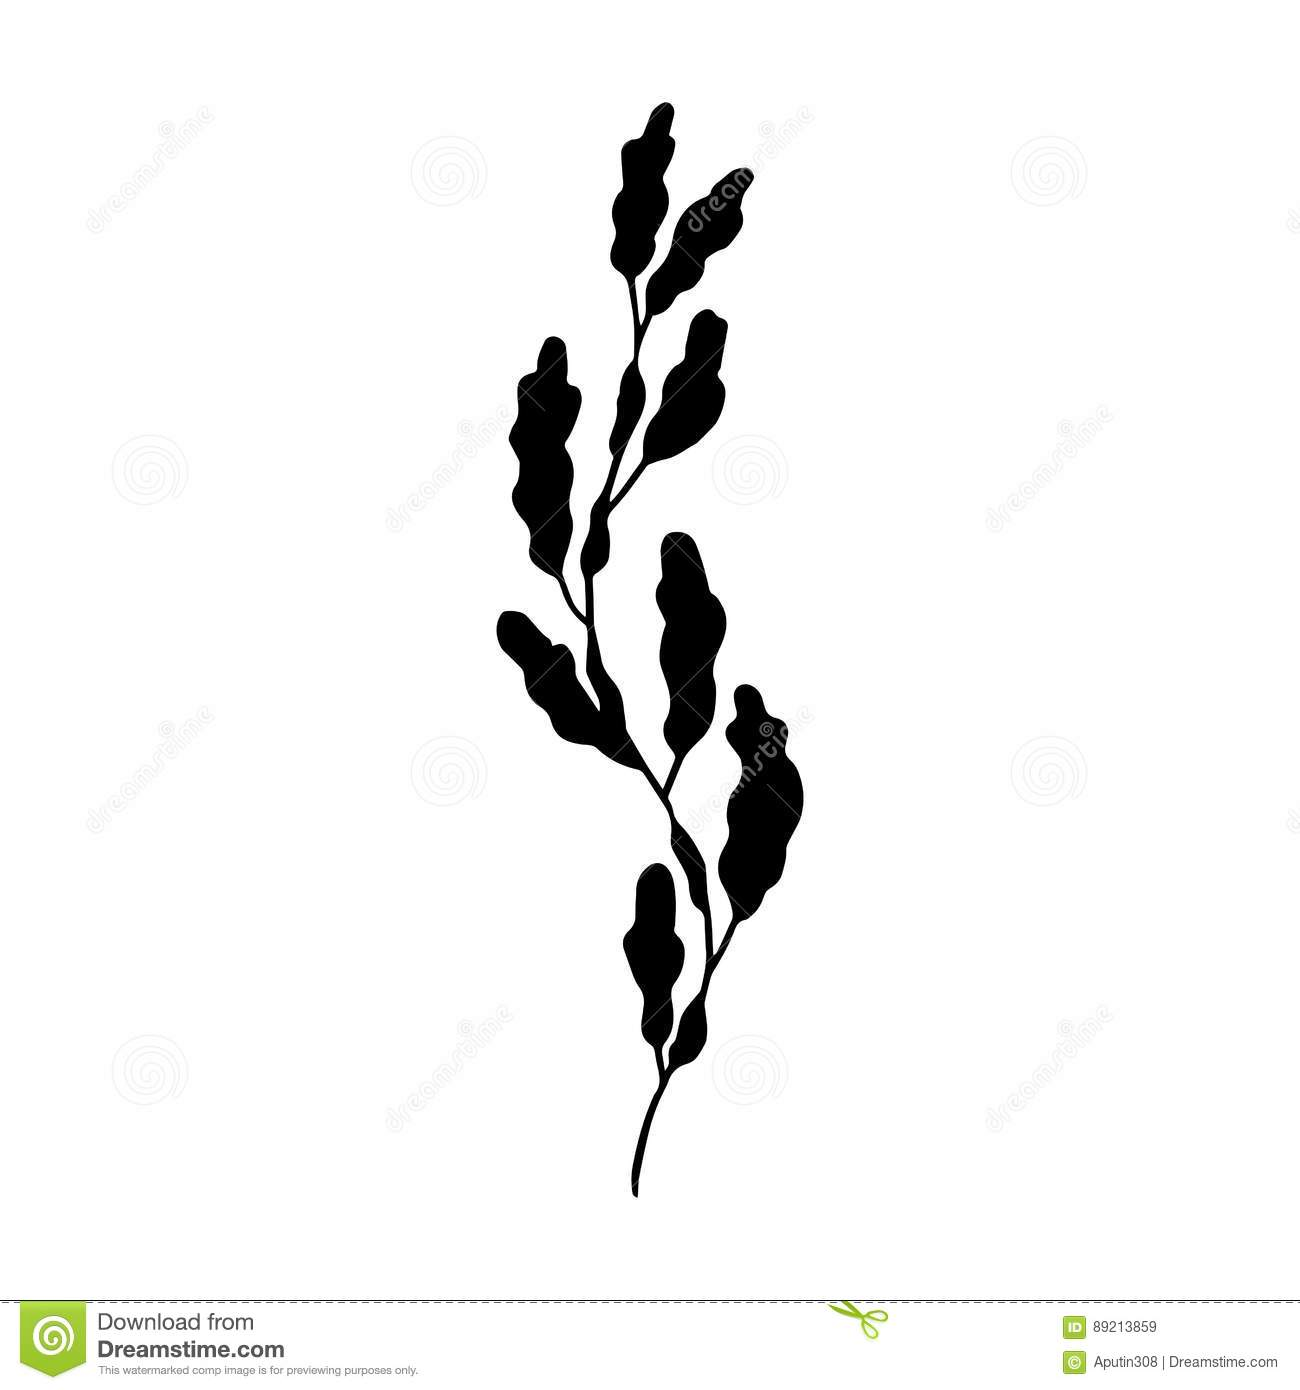 Seaweed Vector Stock Vector Illustration Of Abstract